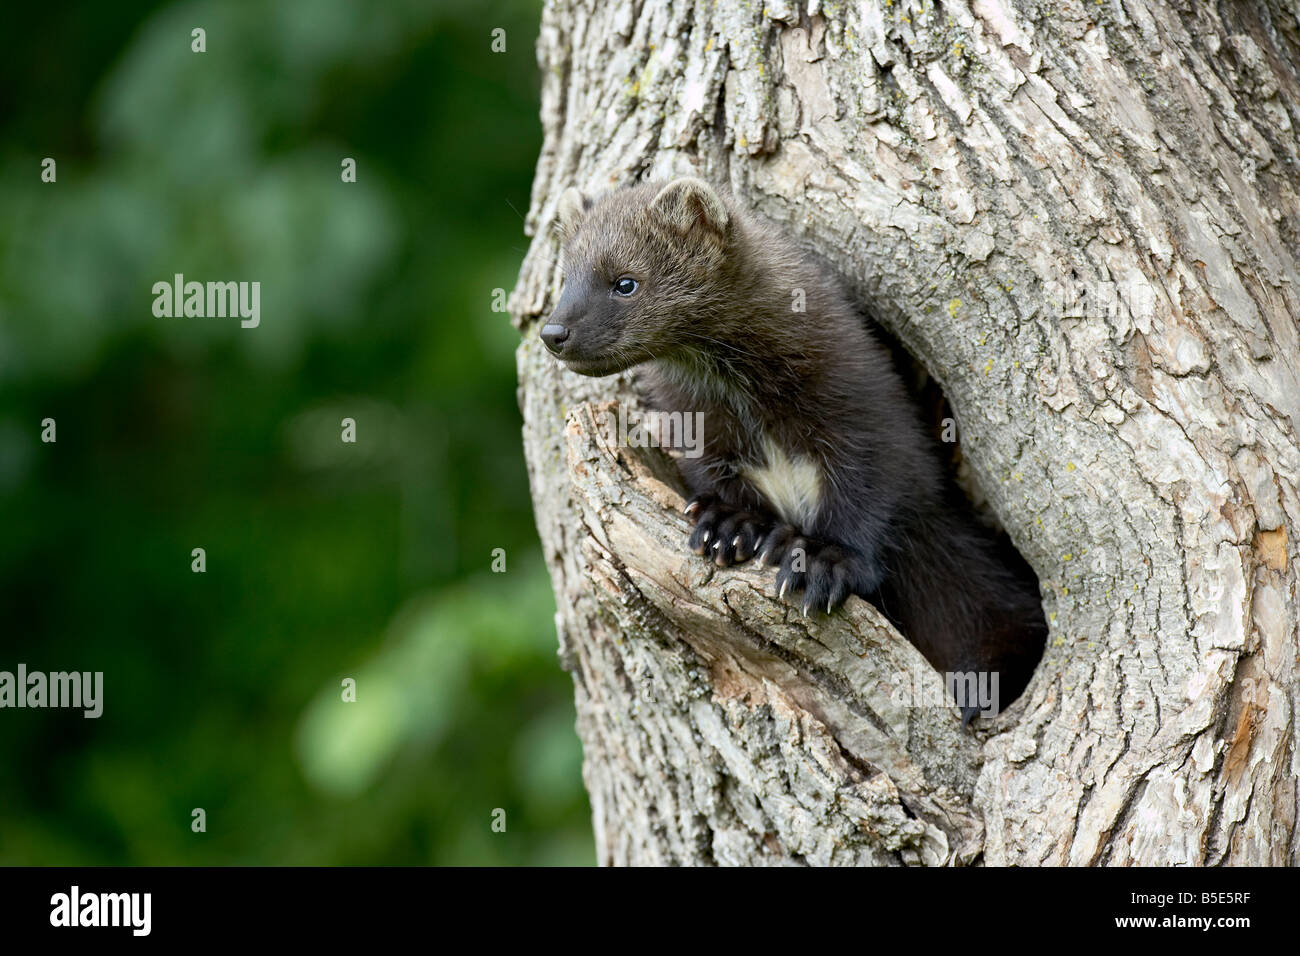 Captive baby fisher (Martes pennanti) in a tree, Sandstone, Minnesota, USA, North America - Stock Image